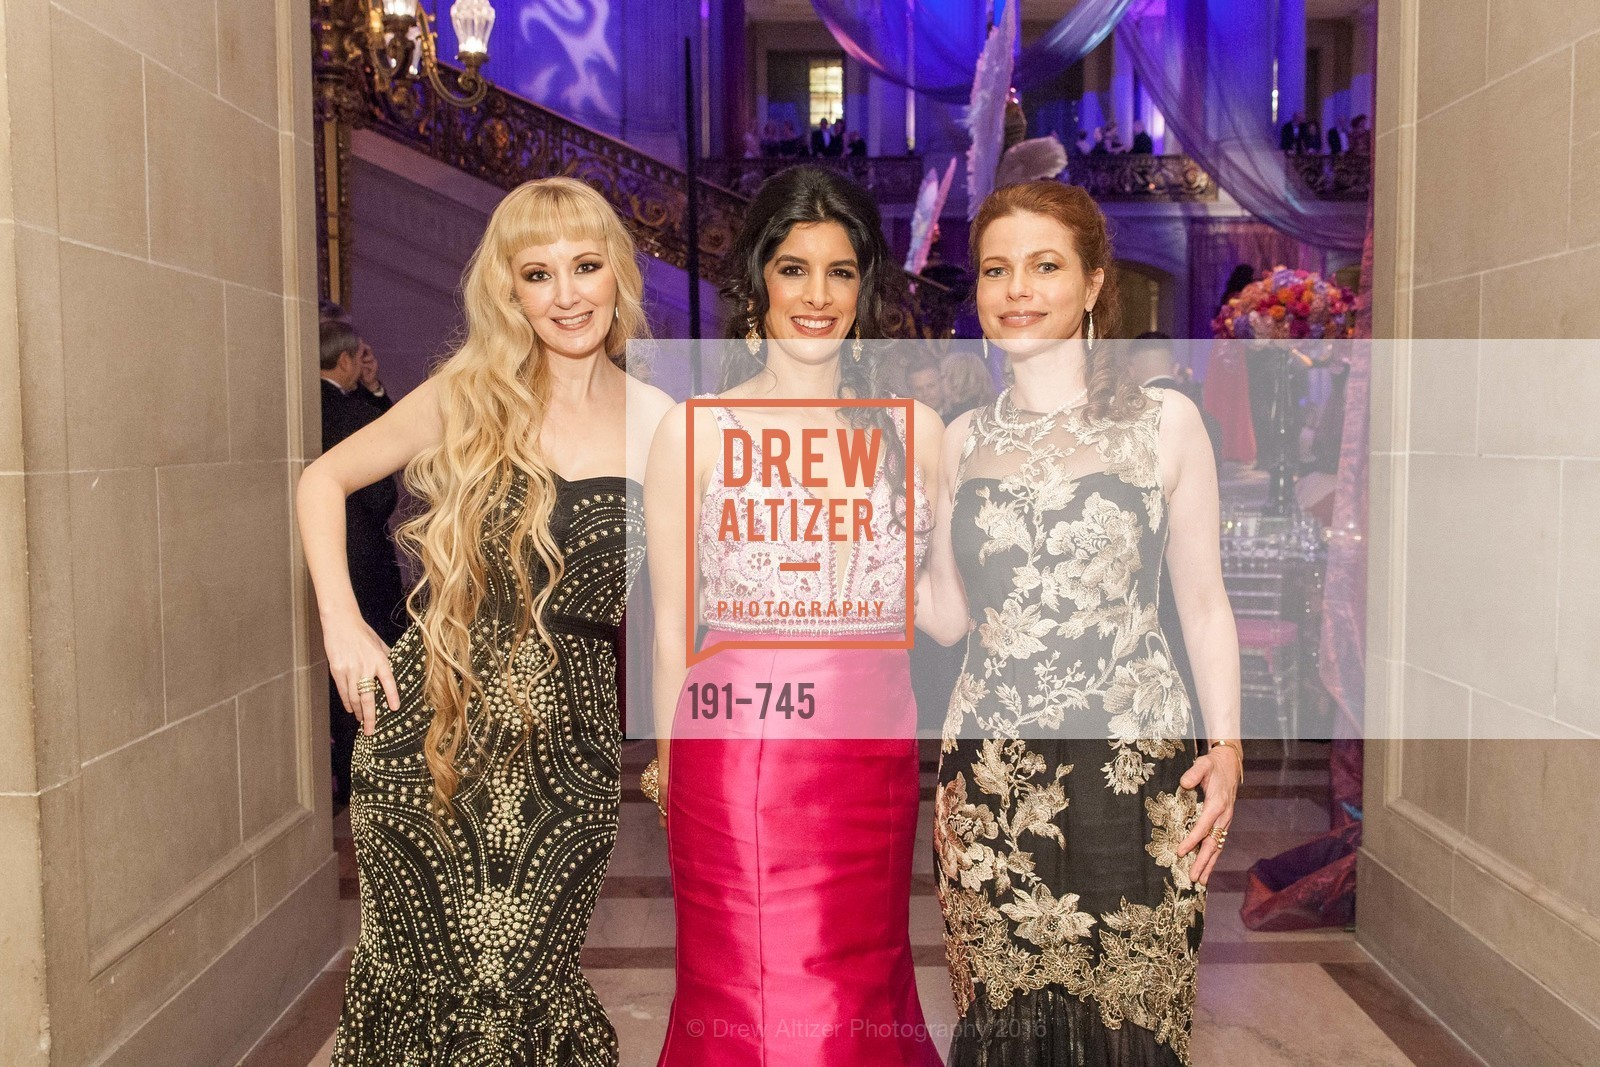 Shannyn Bessoni, Veronica Rivas-Tramontozzi, Christina Eriksson, San Francisco Ballet 2016 Opening Night Gala Part 2, San Francisco City Hall, January 21st, 2016,Drew Altizer, Drew Altizer Photography, full-service agency, private events, San Francisco photographer, photographer california